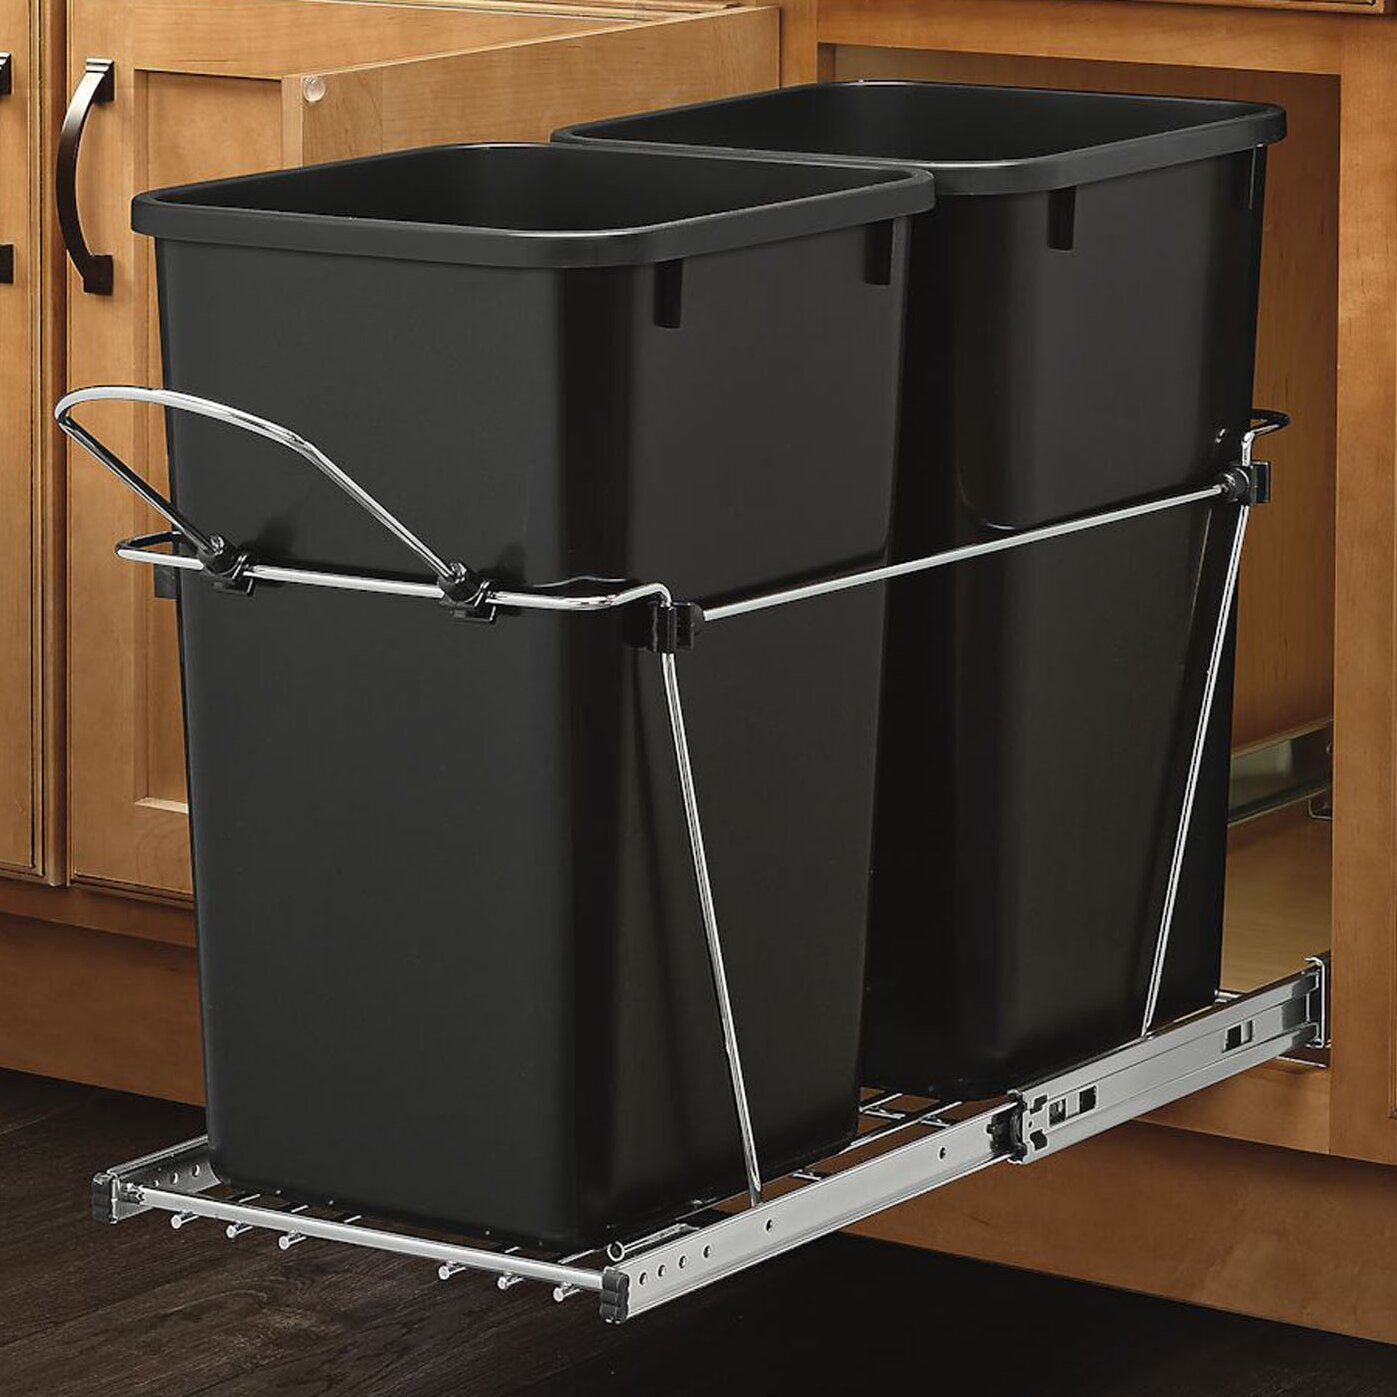 rev a shelf double 6 7 gallon roll out waste container. Black Bedroom Furniture Sets. Home Design Ideas